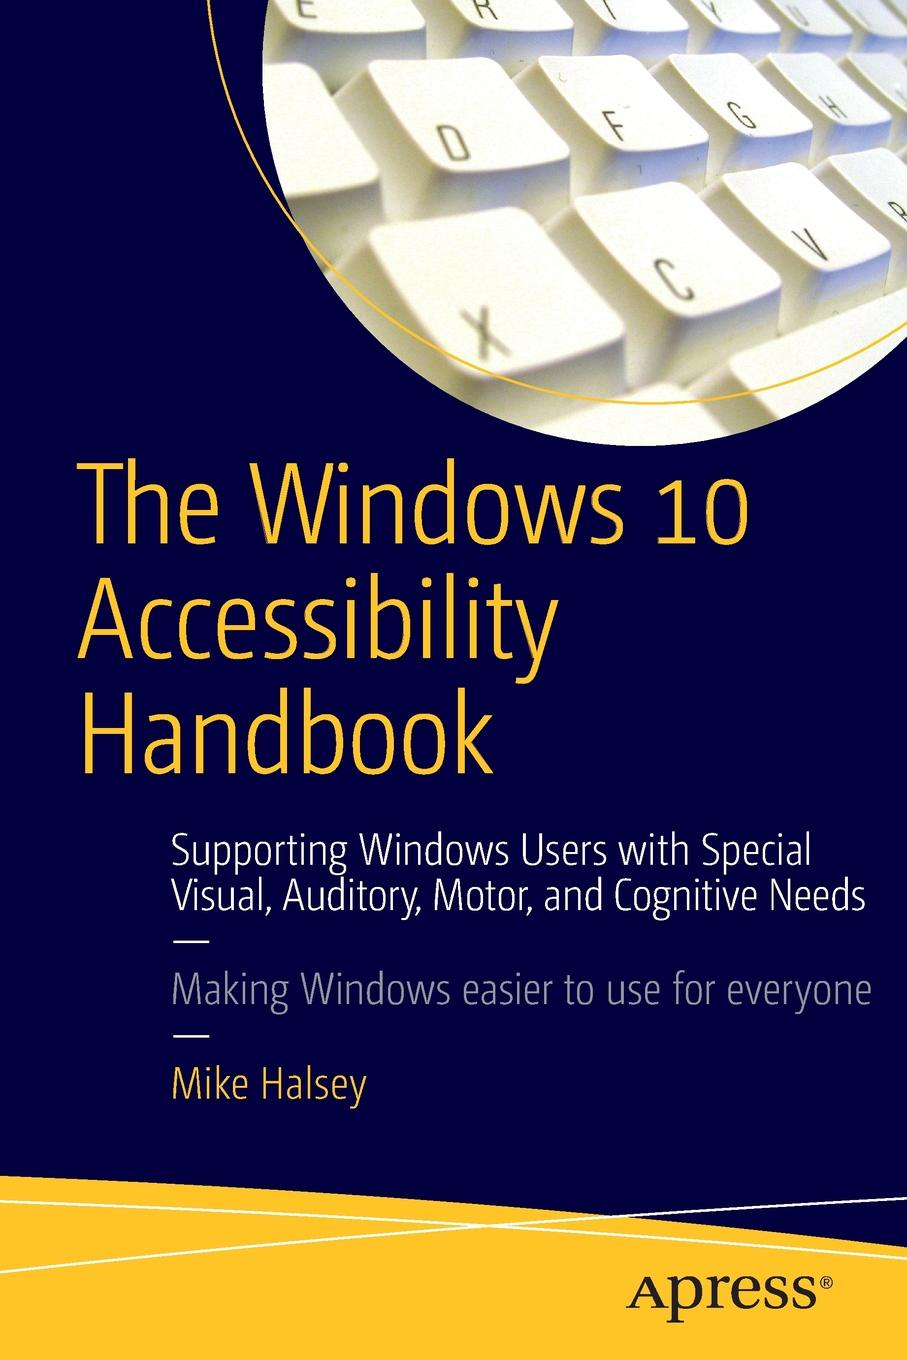 лучшая цена Mike Halsey The Windows 10 Accessibility Handbook. Supporting Windows Users with Special Visual, Auditory, Motor, and Cognitive Needs